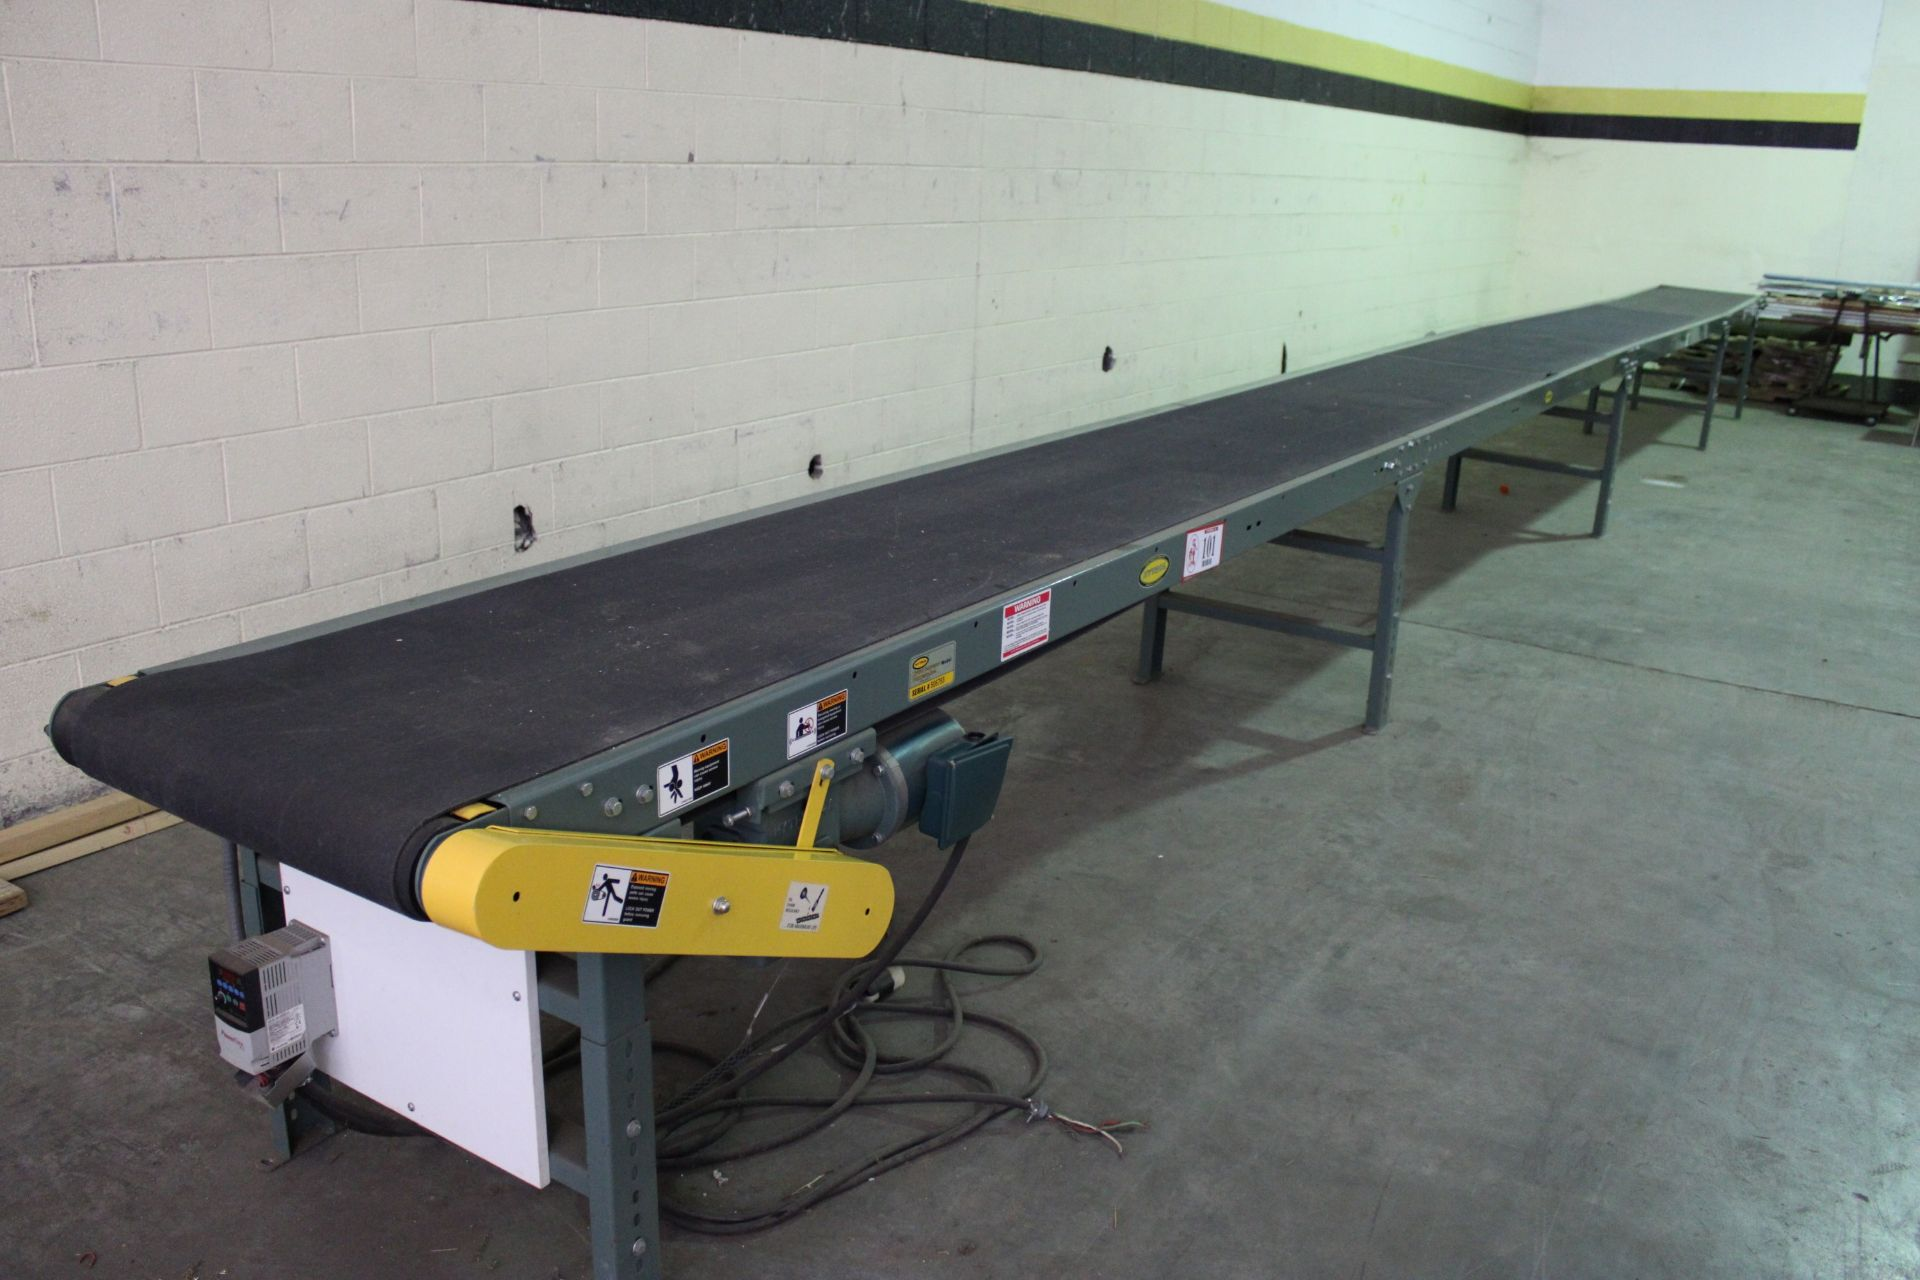 Hytrol Model TA 37ft Power Conveyor, 230 v 3 Phase, New, Used less than 100 hours, Variable speed to - Image 5 of 5